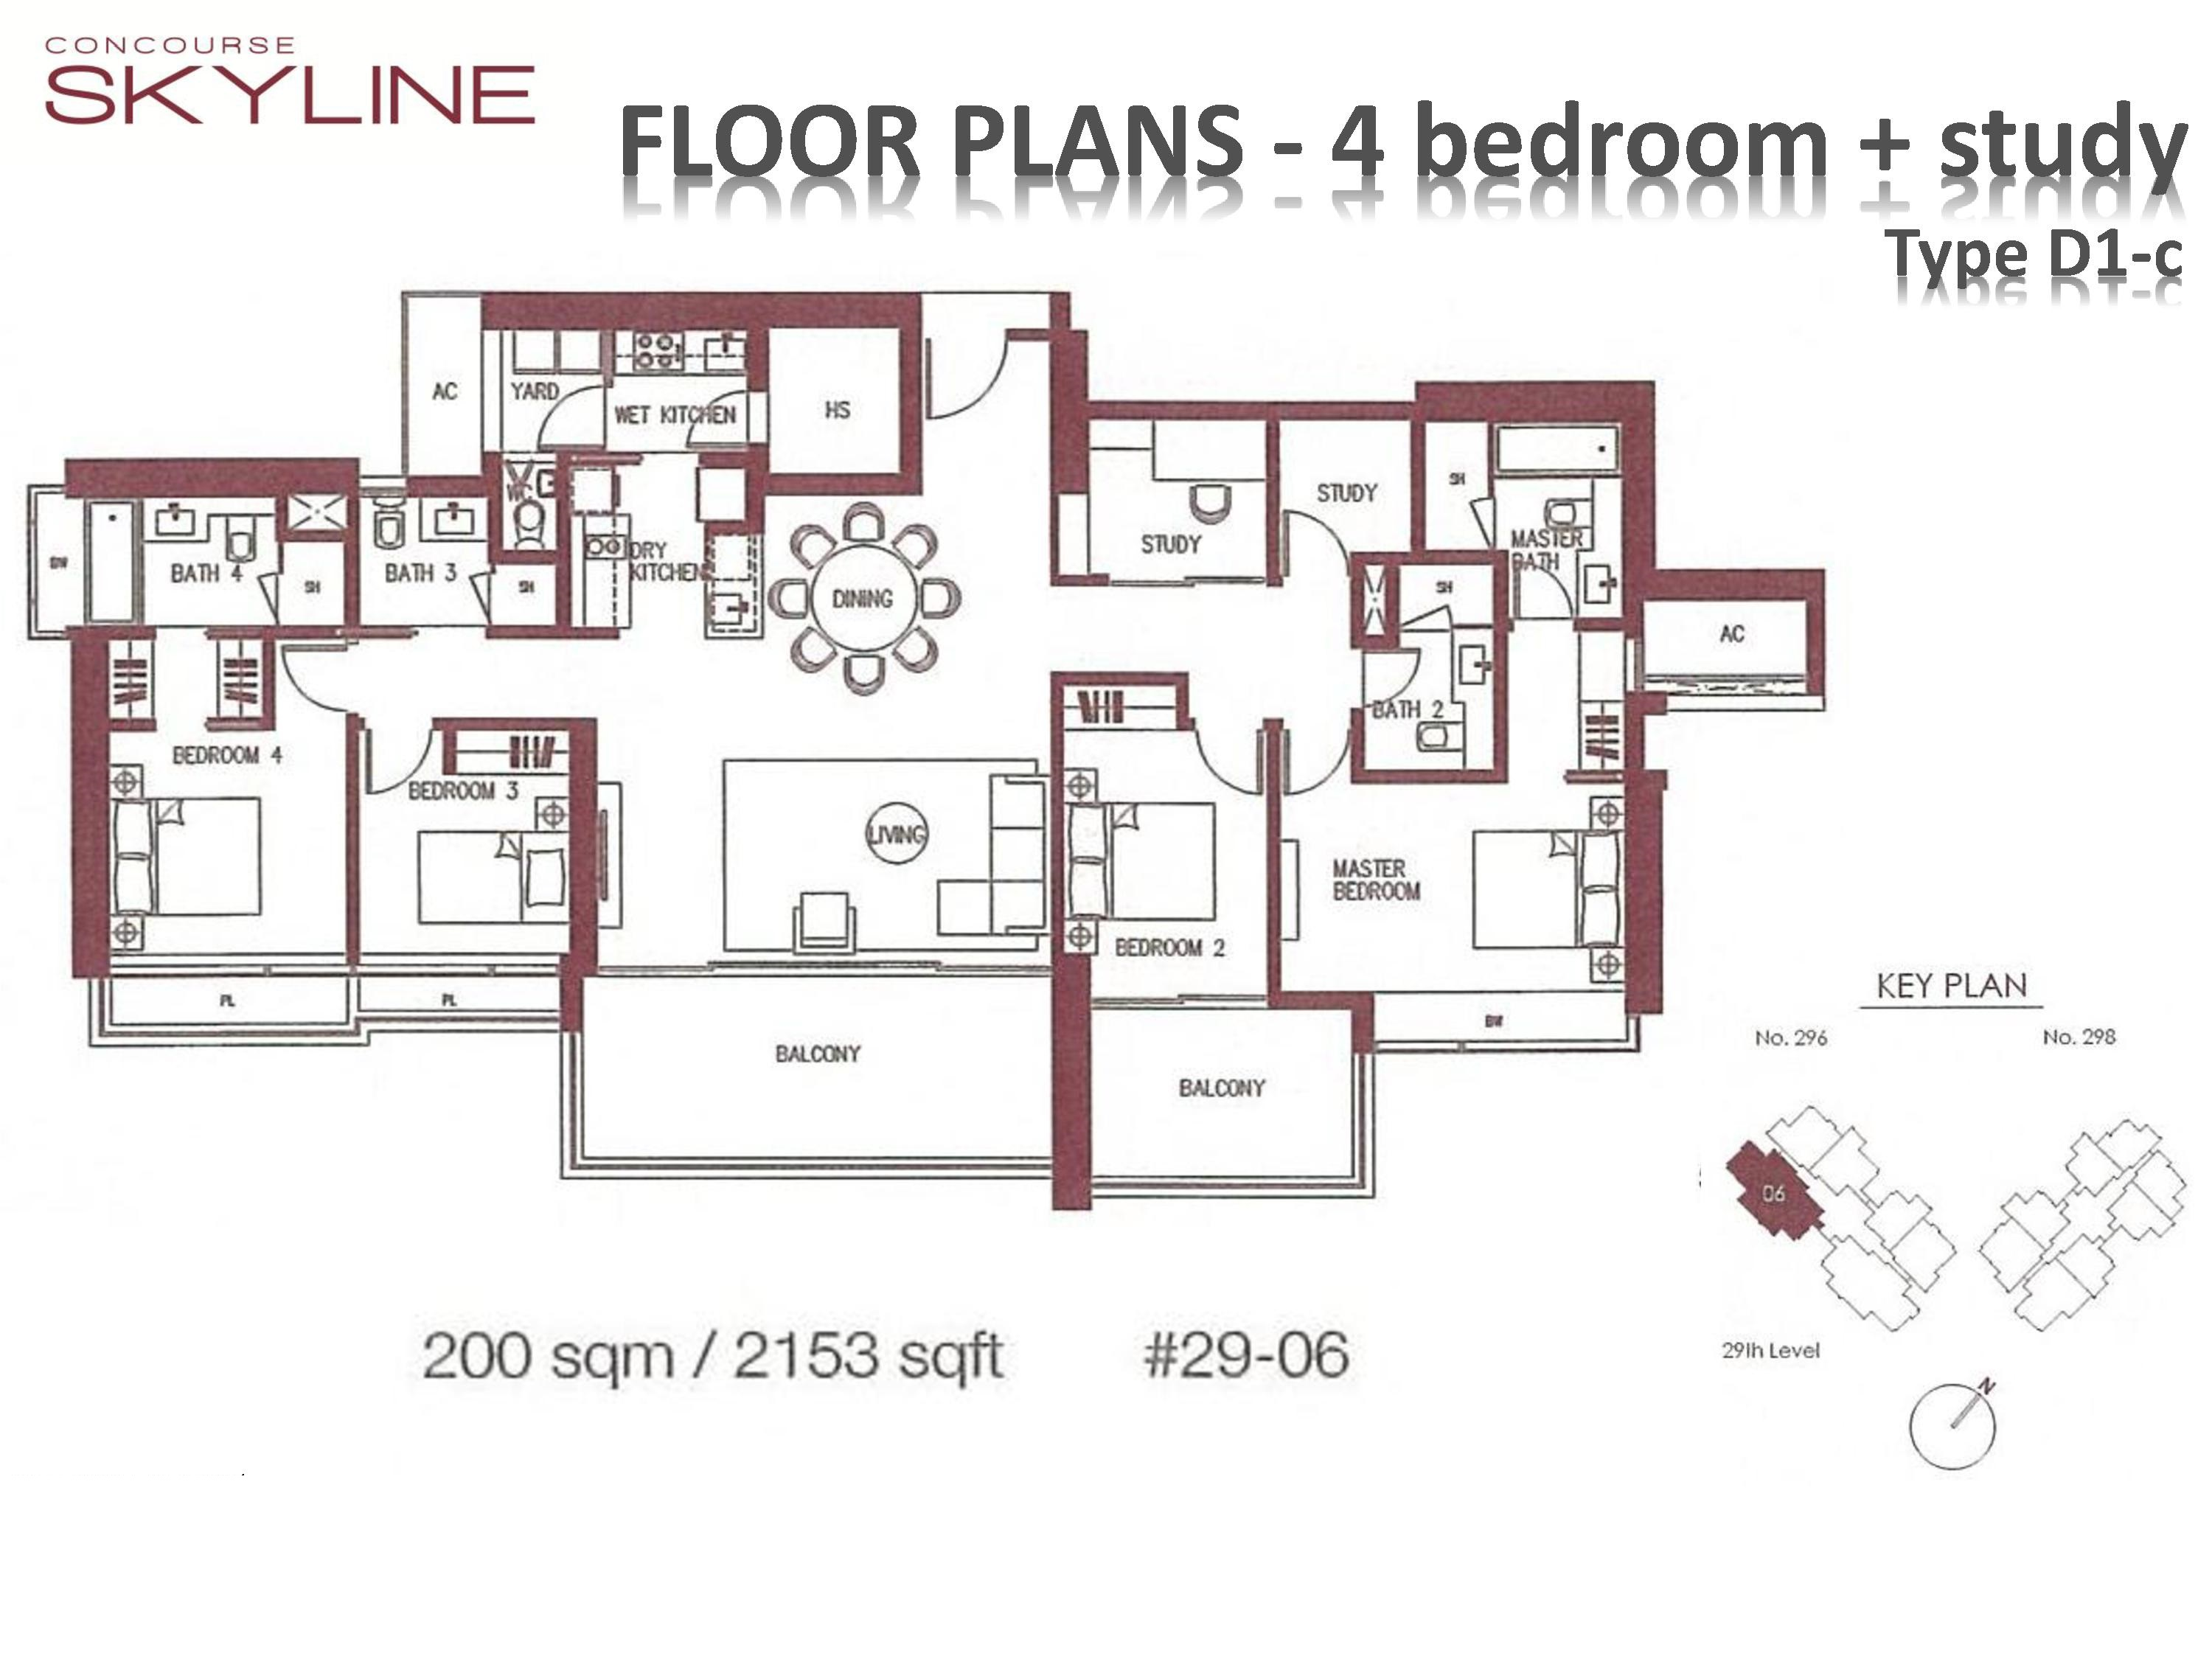 Concourse Skyline 4 Bedroom + Study Type D1-c Floor Plans